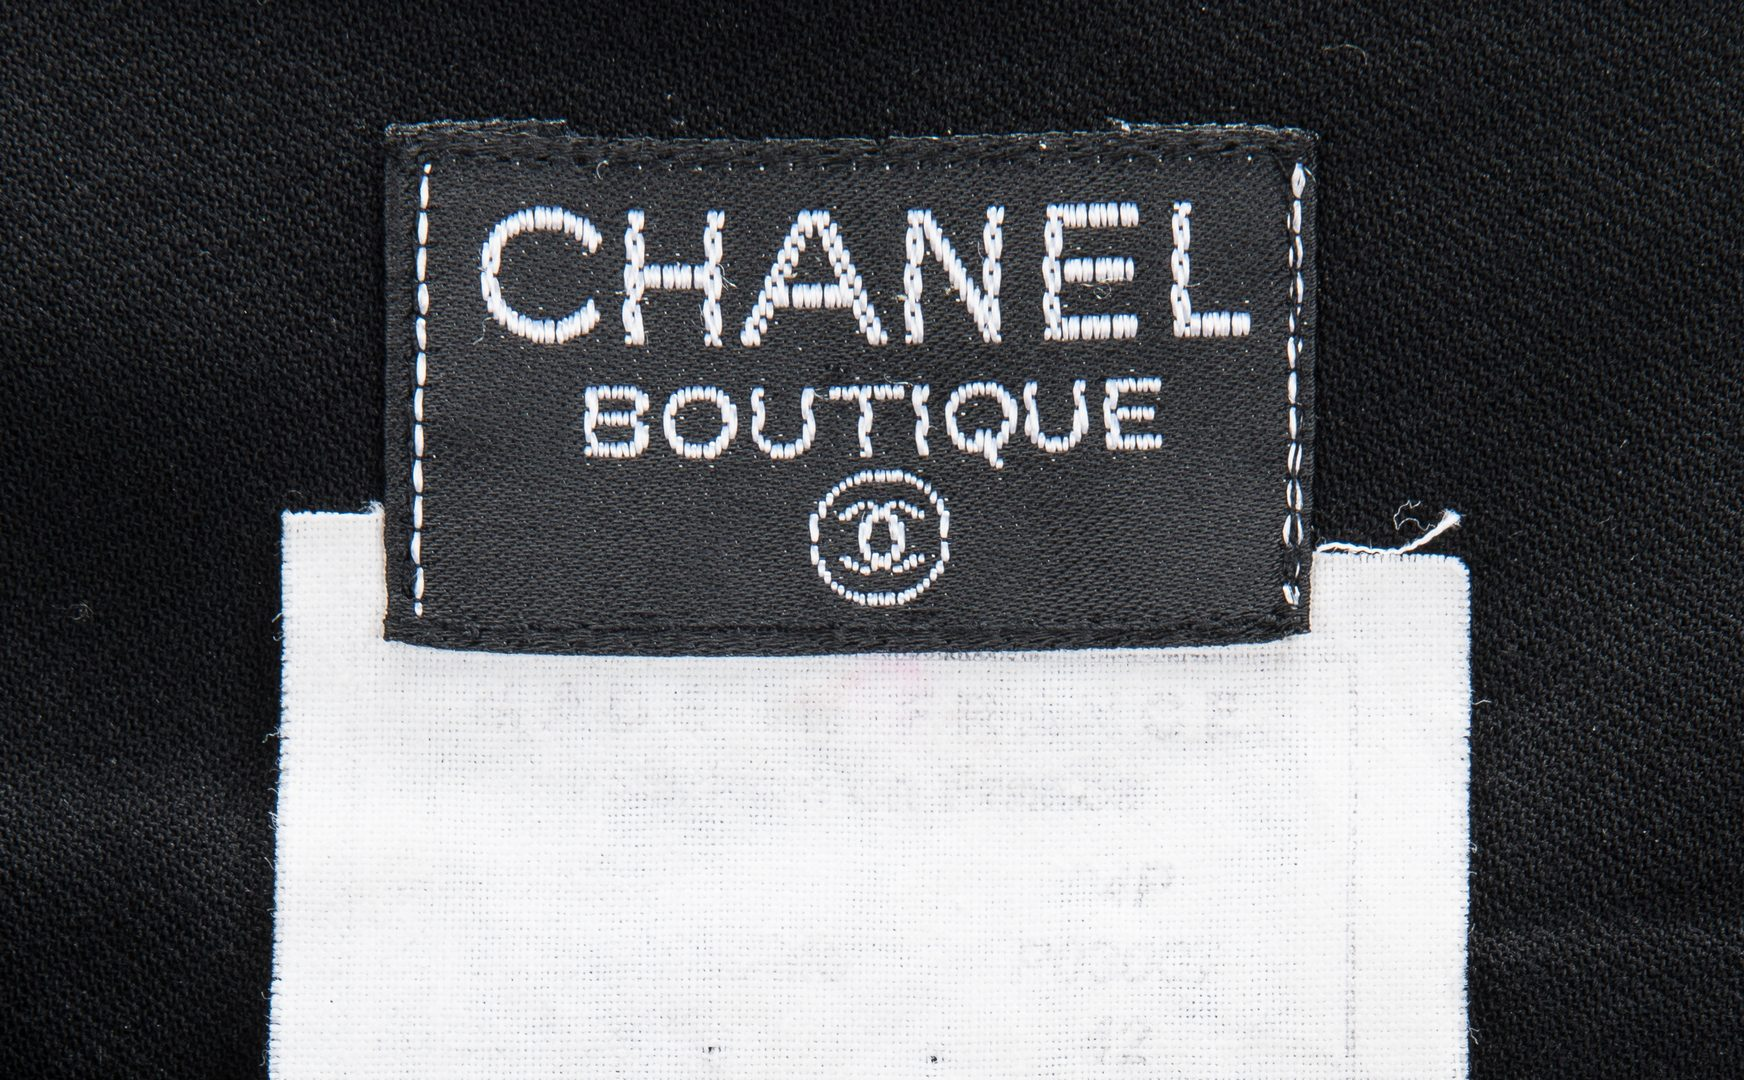 Lot 748: 4 Vintage Chanel Fashion Items